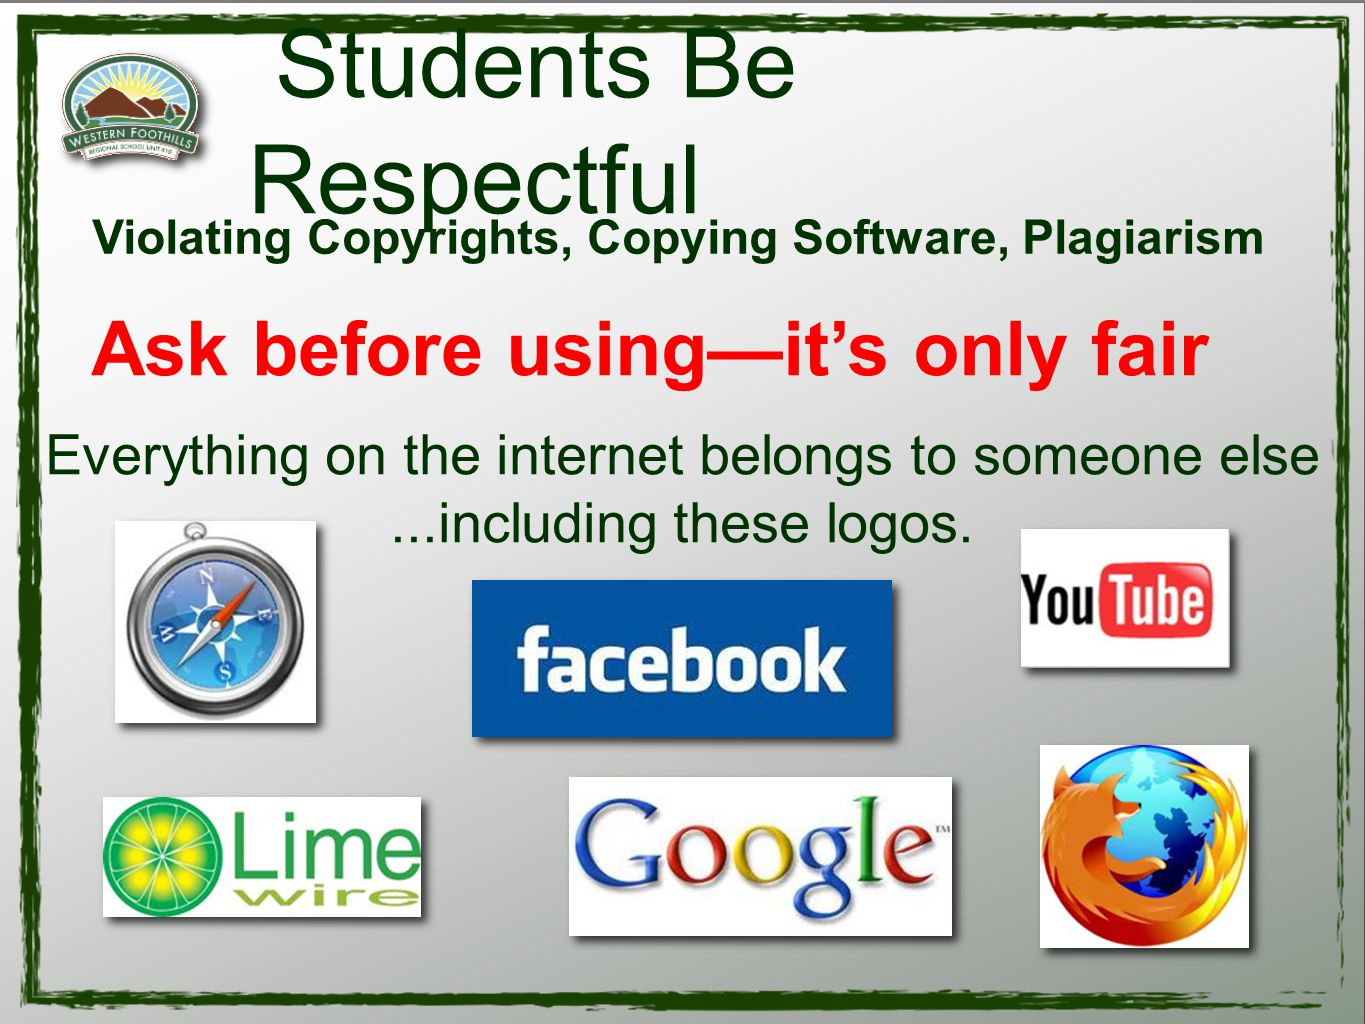 Violating Copyrights, Copying Software, Plagiarism Students Be Respectful Ask before using—it's only fair Everything on the internet belongs to someone else...including these logos.